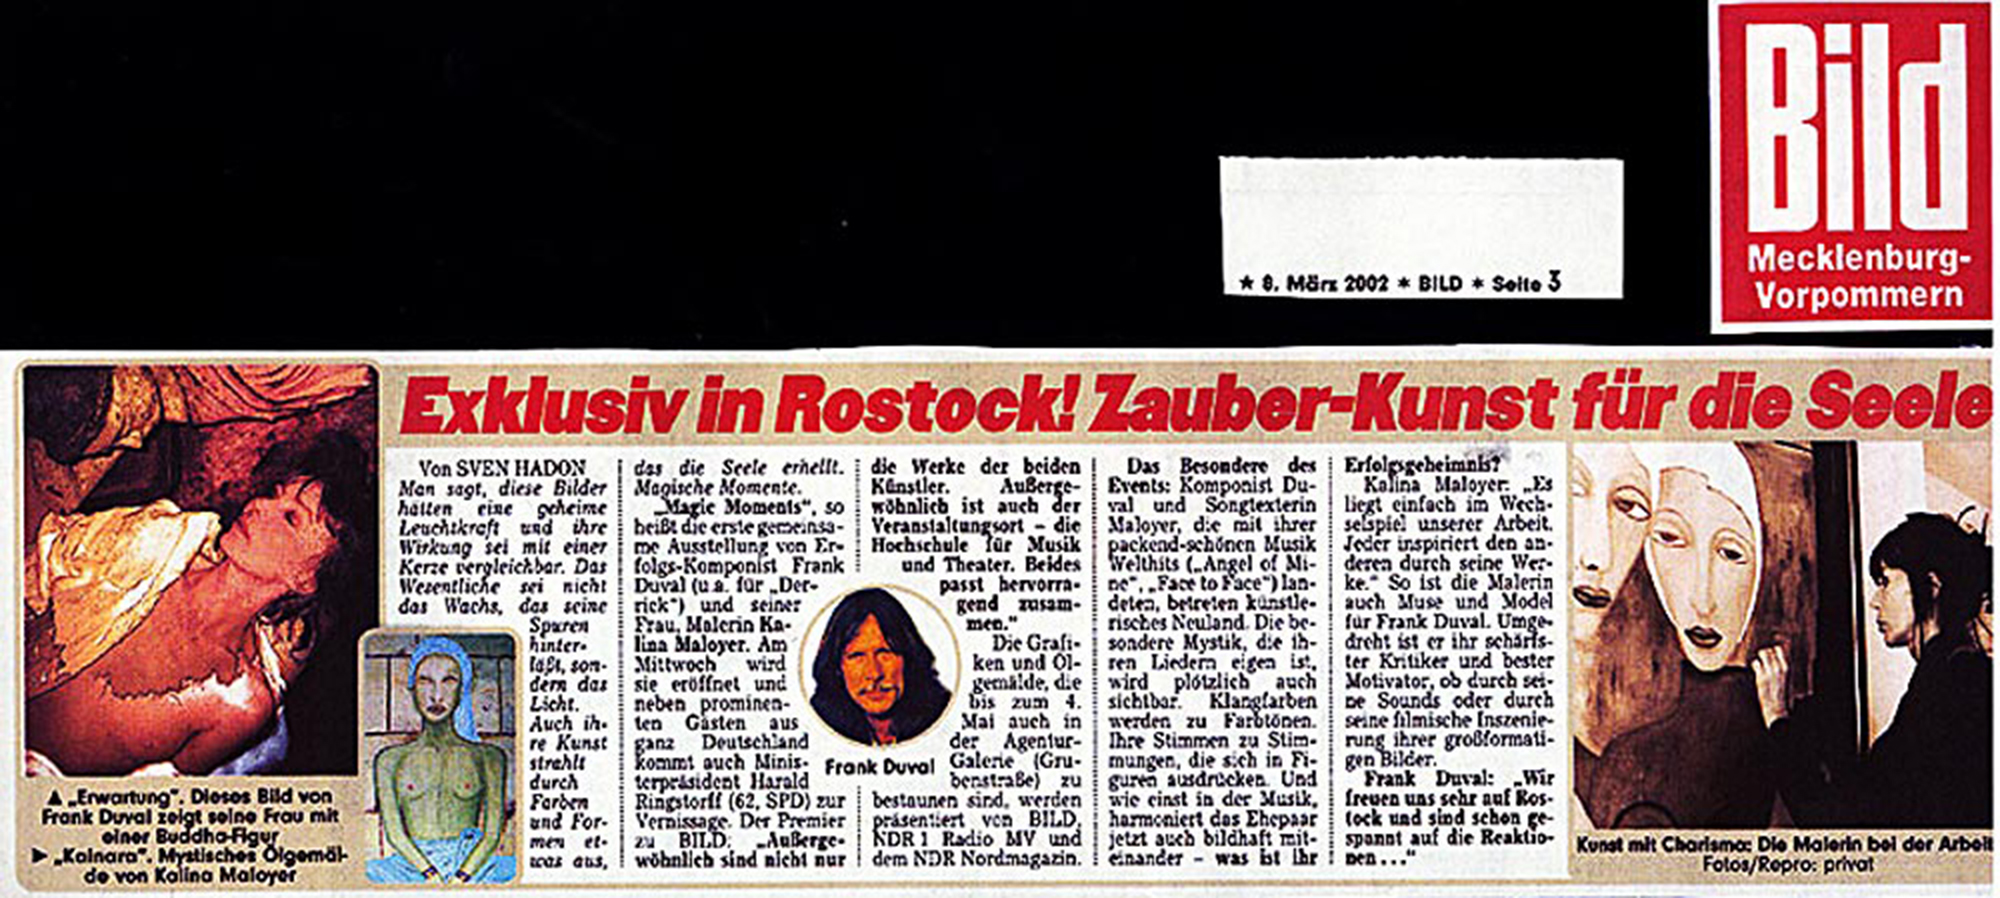 Magic Moments – Art Exhibition Rostock – Kalina Maloyer Frank Duval – Bildzeitung Artikel – Exklusiv in Rostock! Zauber-Kunst für die Seele